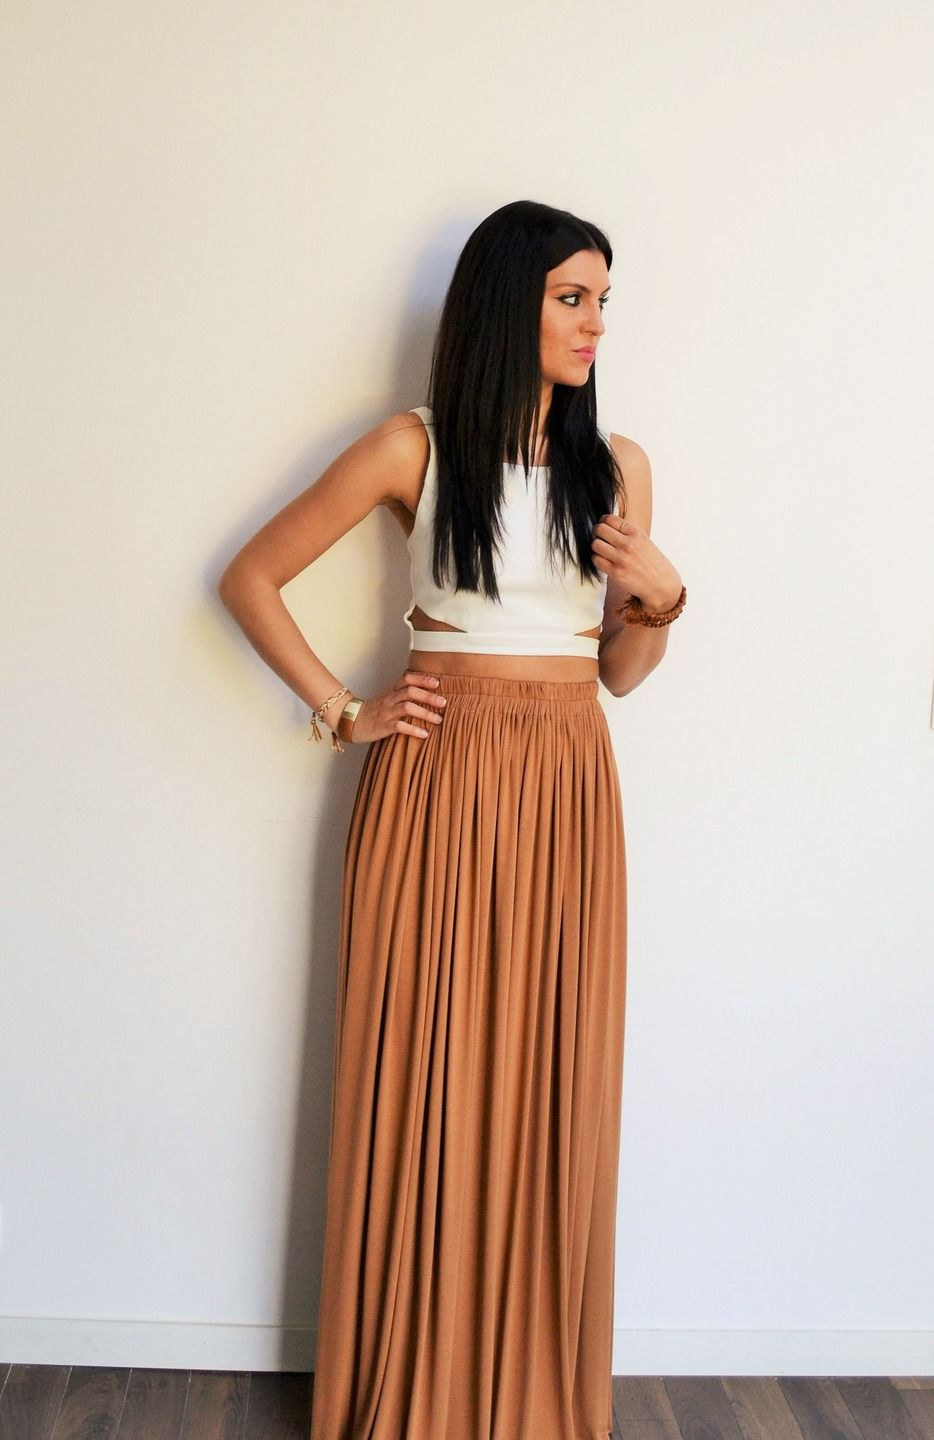 maxi long skirt camel brown high waist long skirt long flowing skirt bohemian skirt skirt. Black Bedroom Furniture Sets. Home Design Ideas